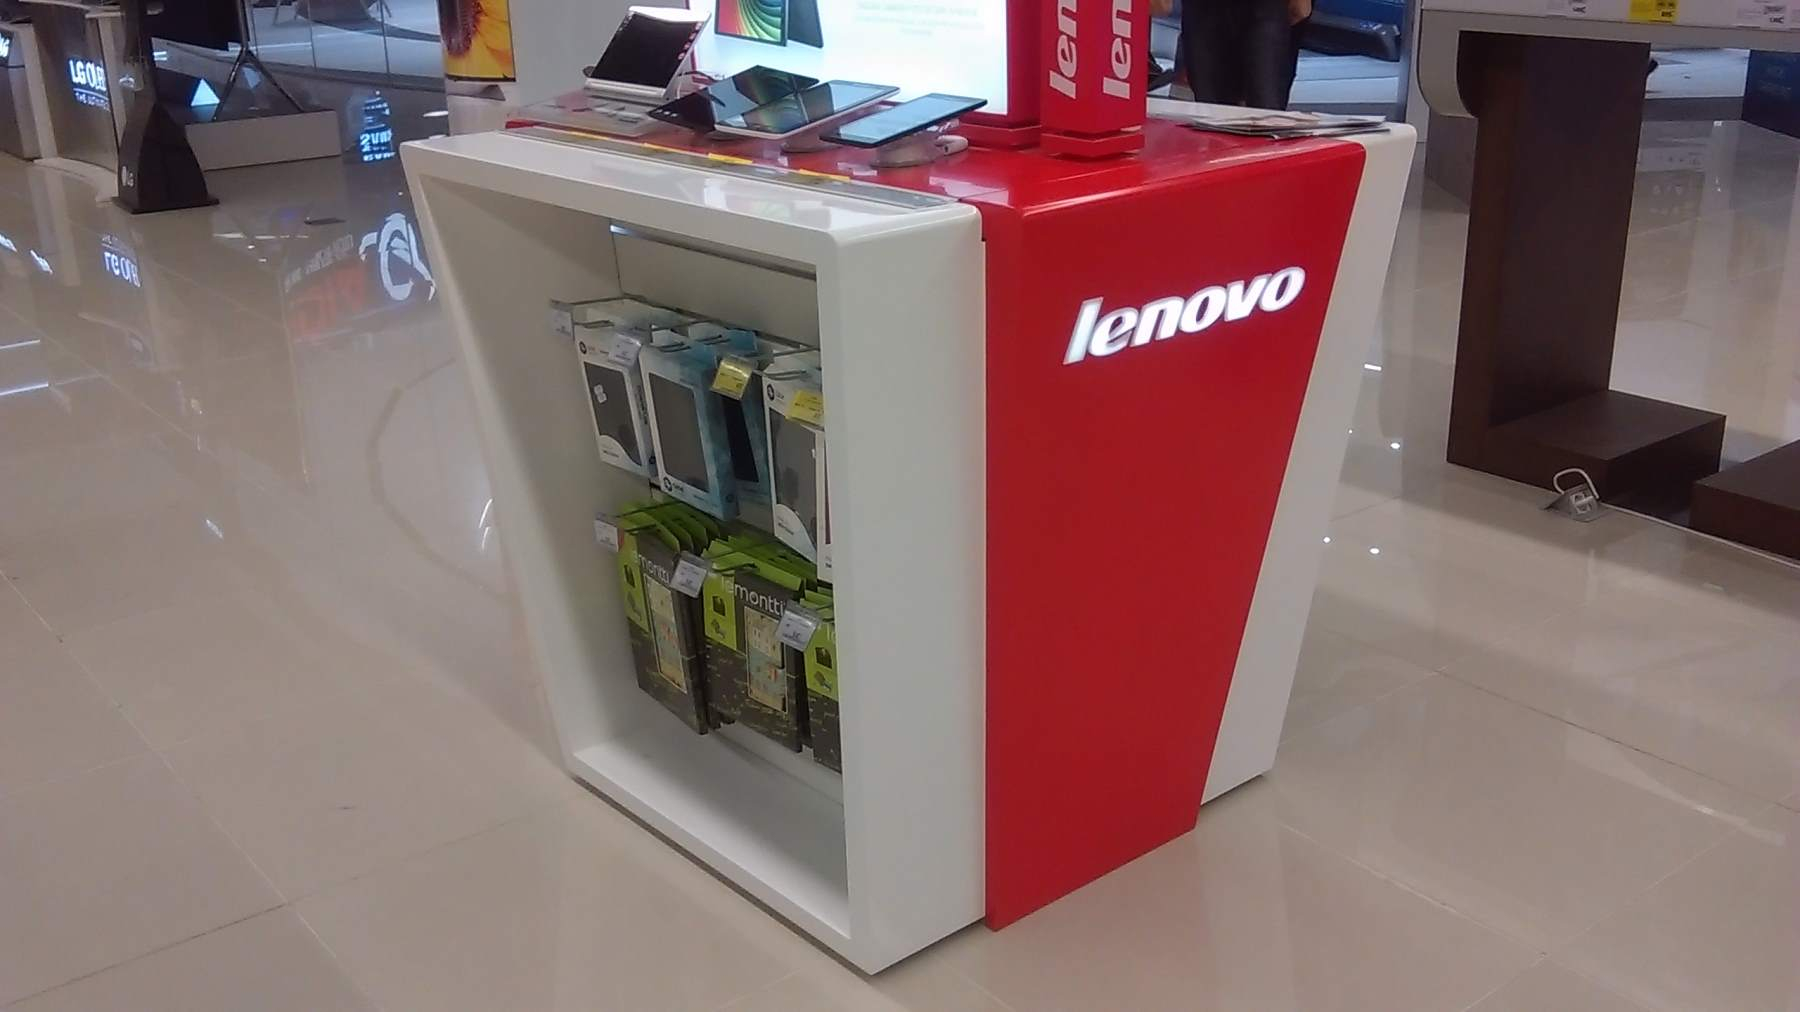 mobilier stand LENOVO mall mdf vopsit009